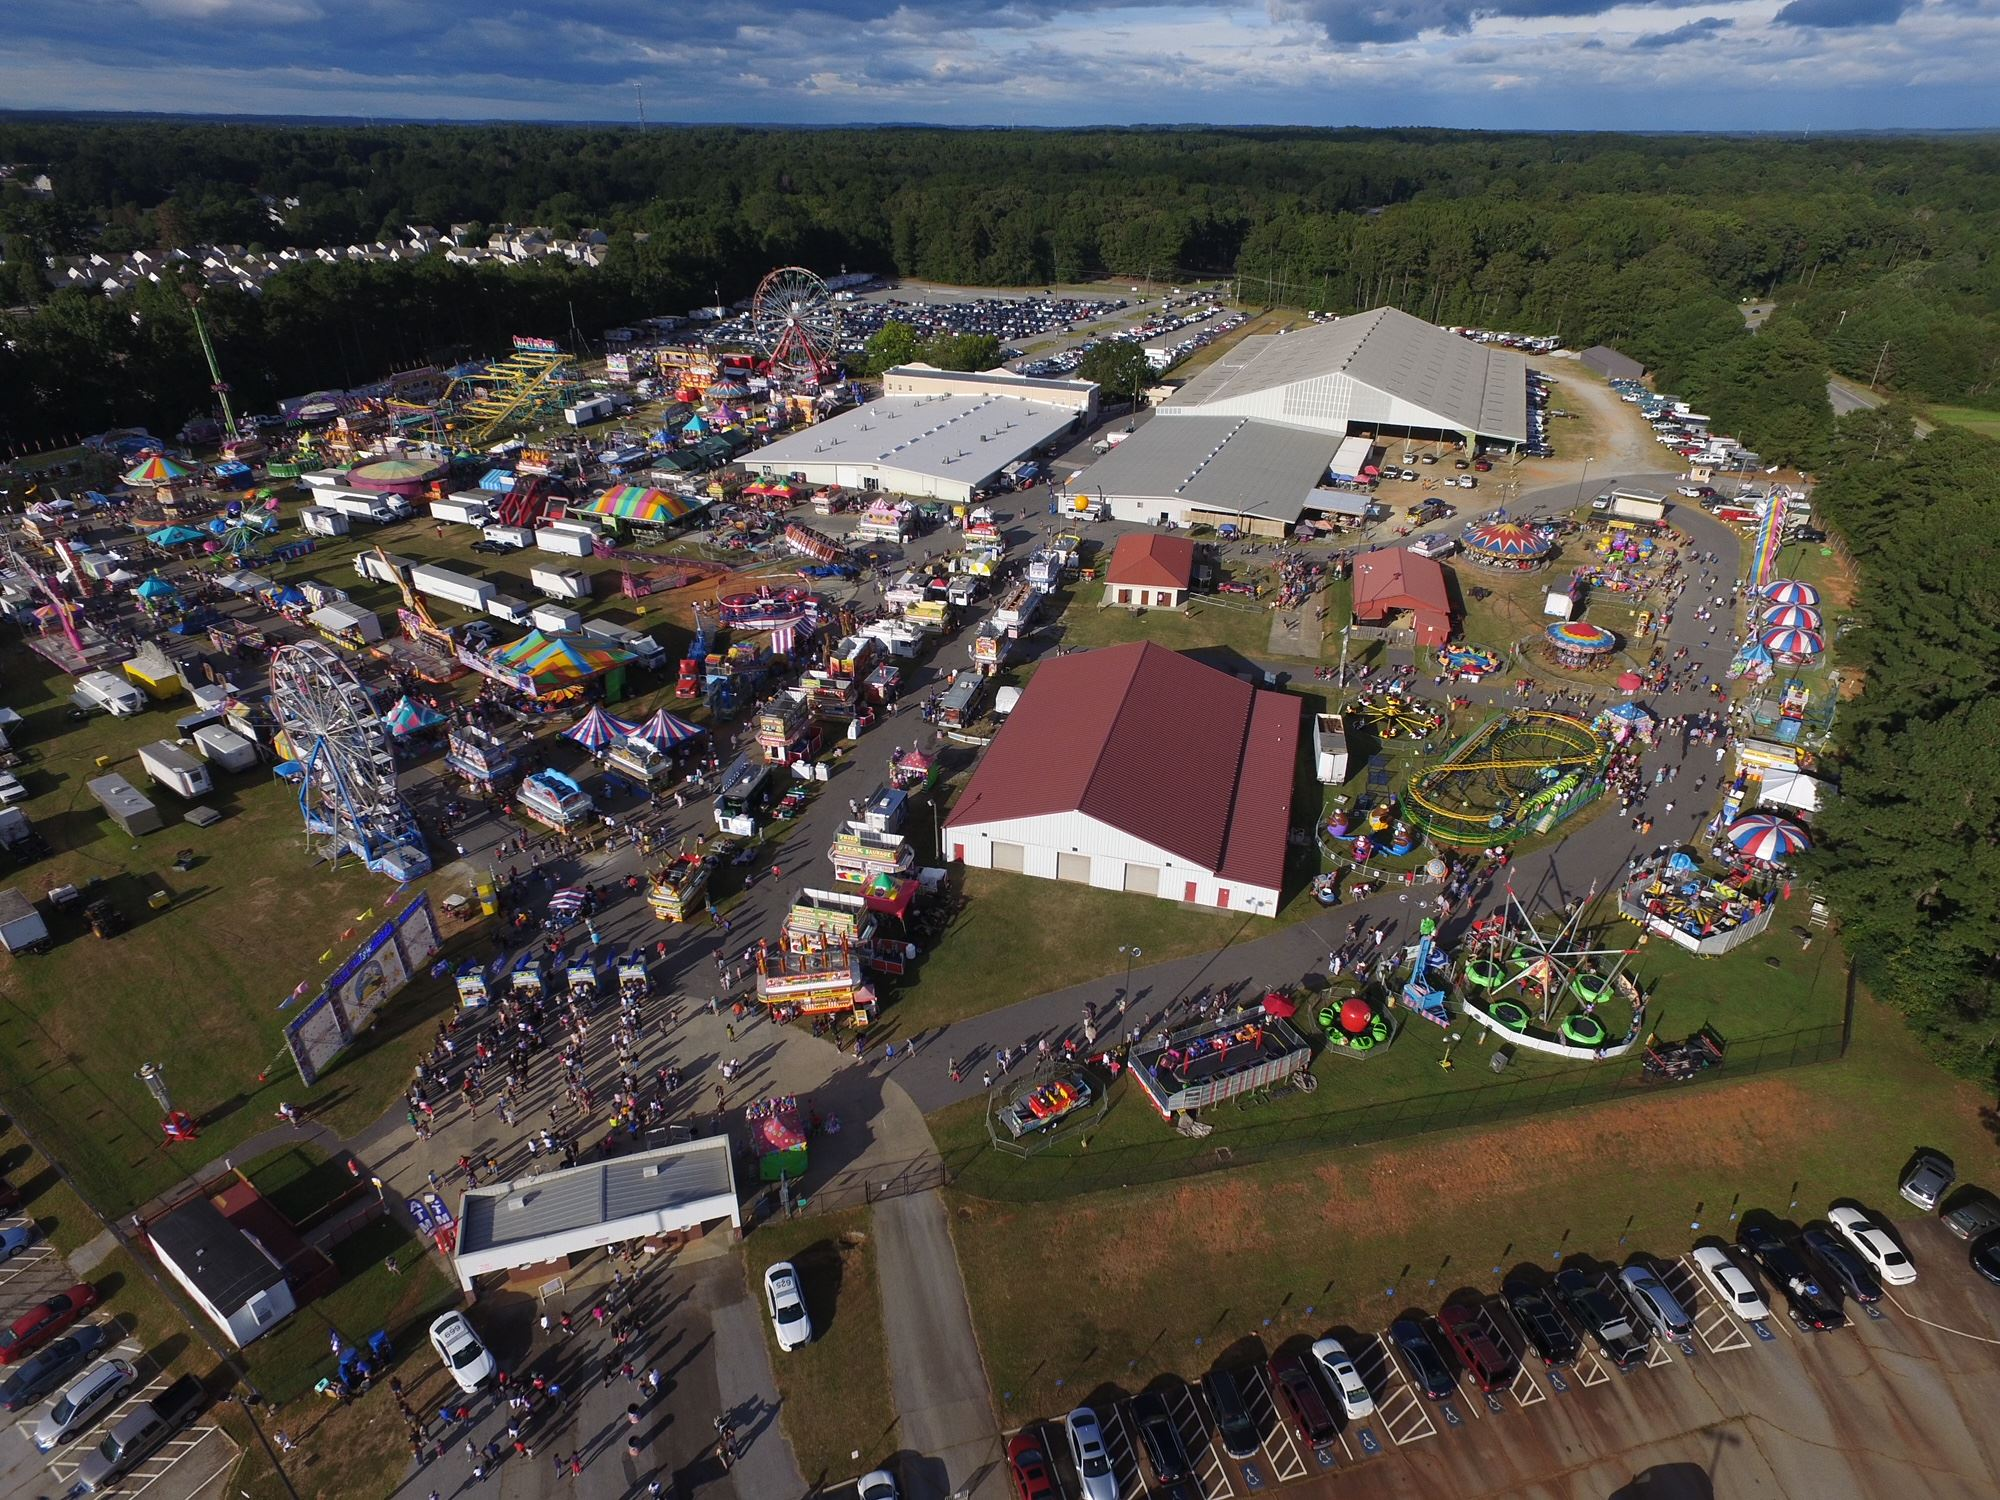 Drone shot of fair from 500 feet up